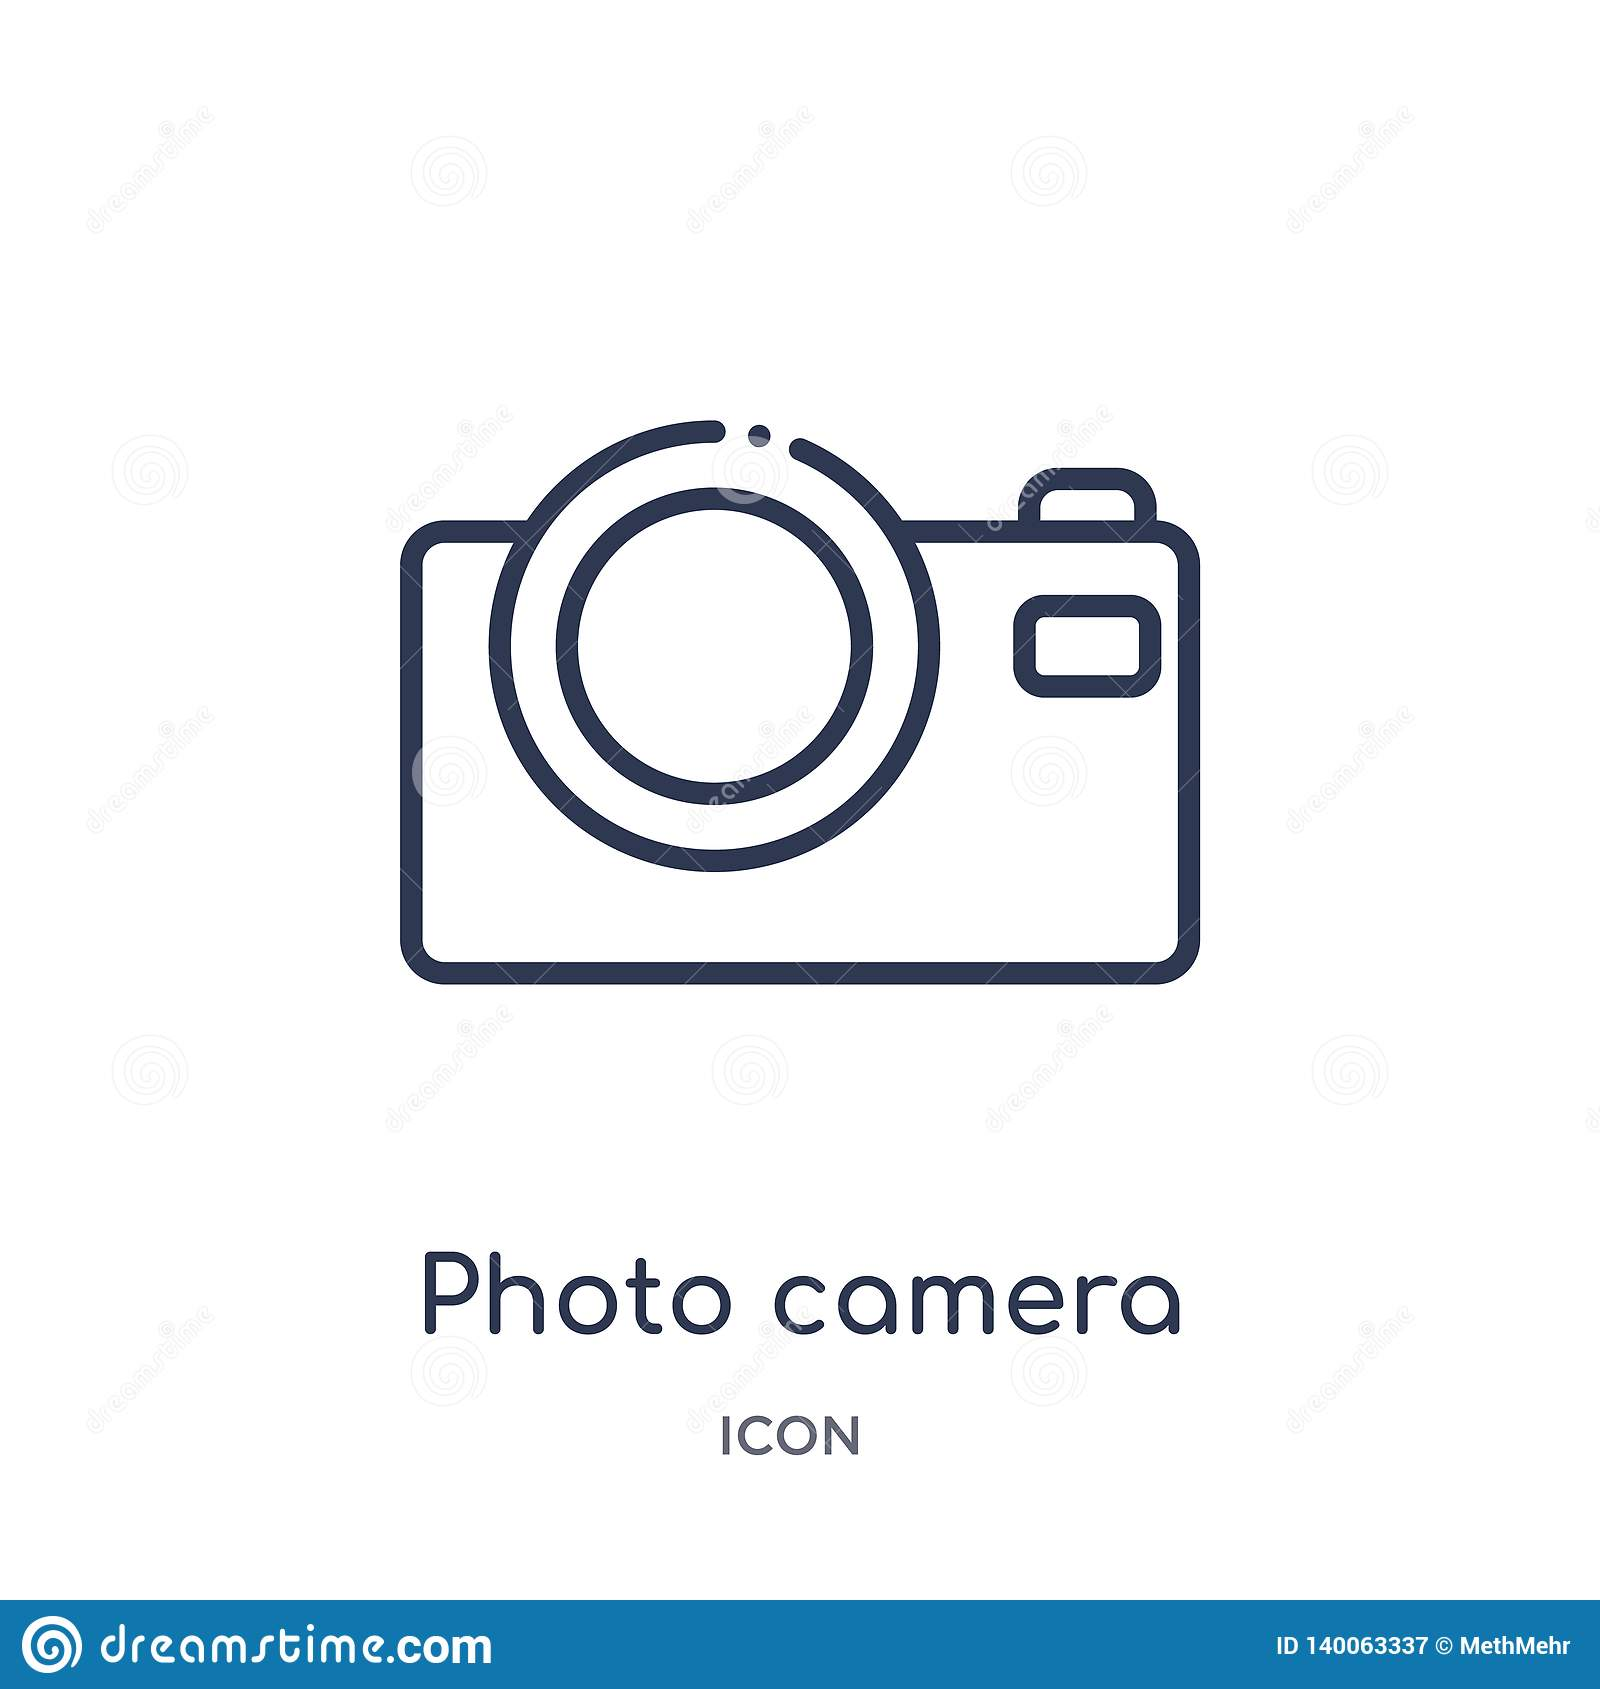 Photo camera icon from music and media outline collection. Thin line photo camera icon isolated on white background